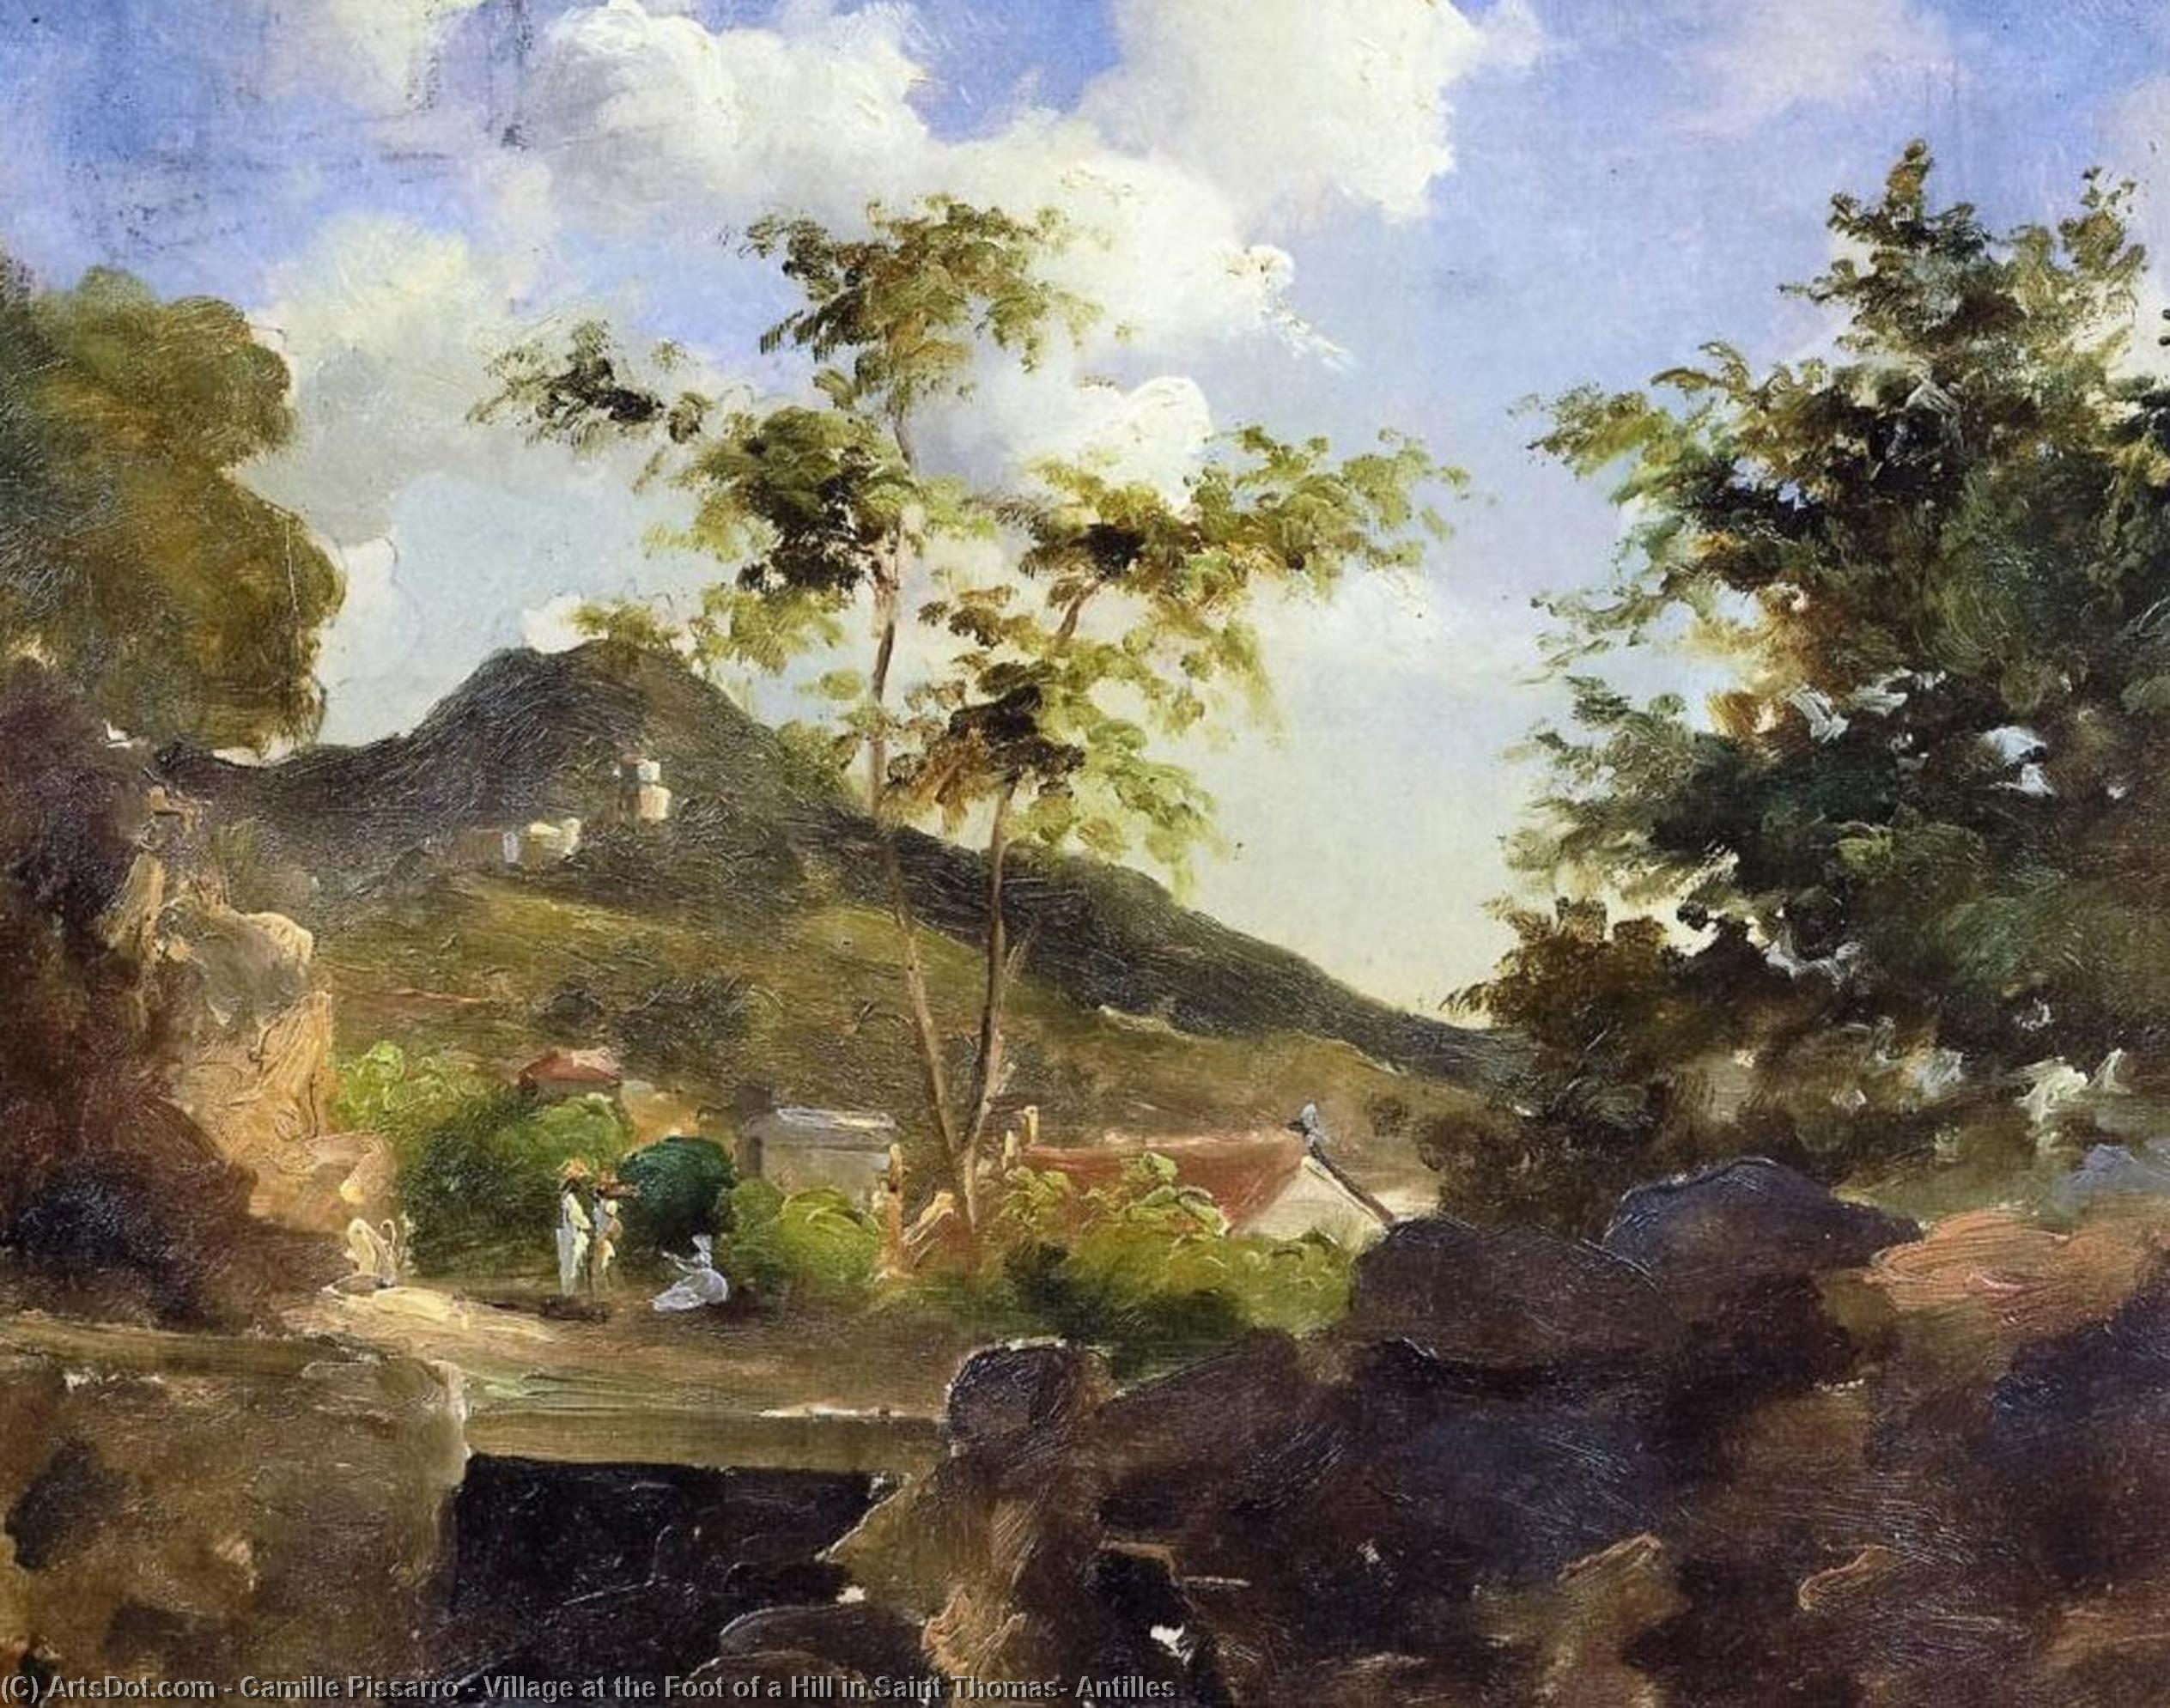 Wikioo.org - The Encyclopedia of Fine Arts - Painting, Artwork by Camille Pissarro - Village at the Foot of a Hill in Saint Thomas, Antilles